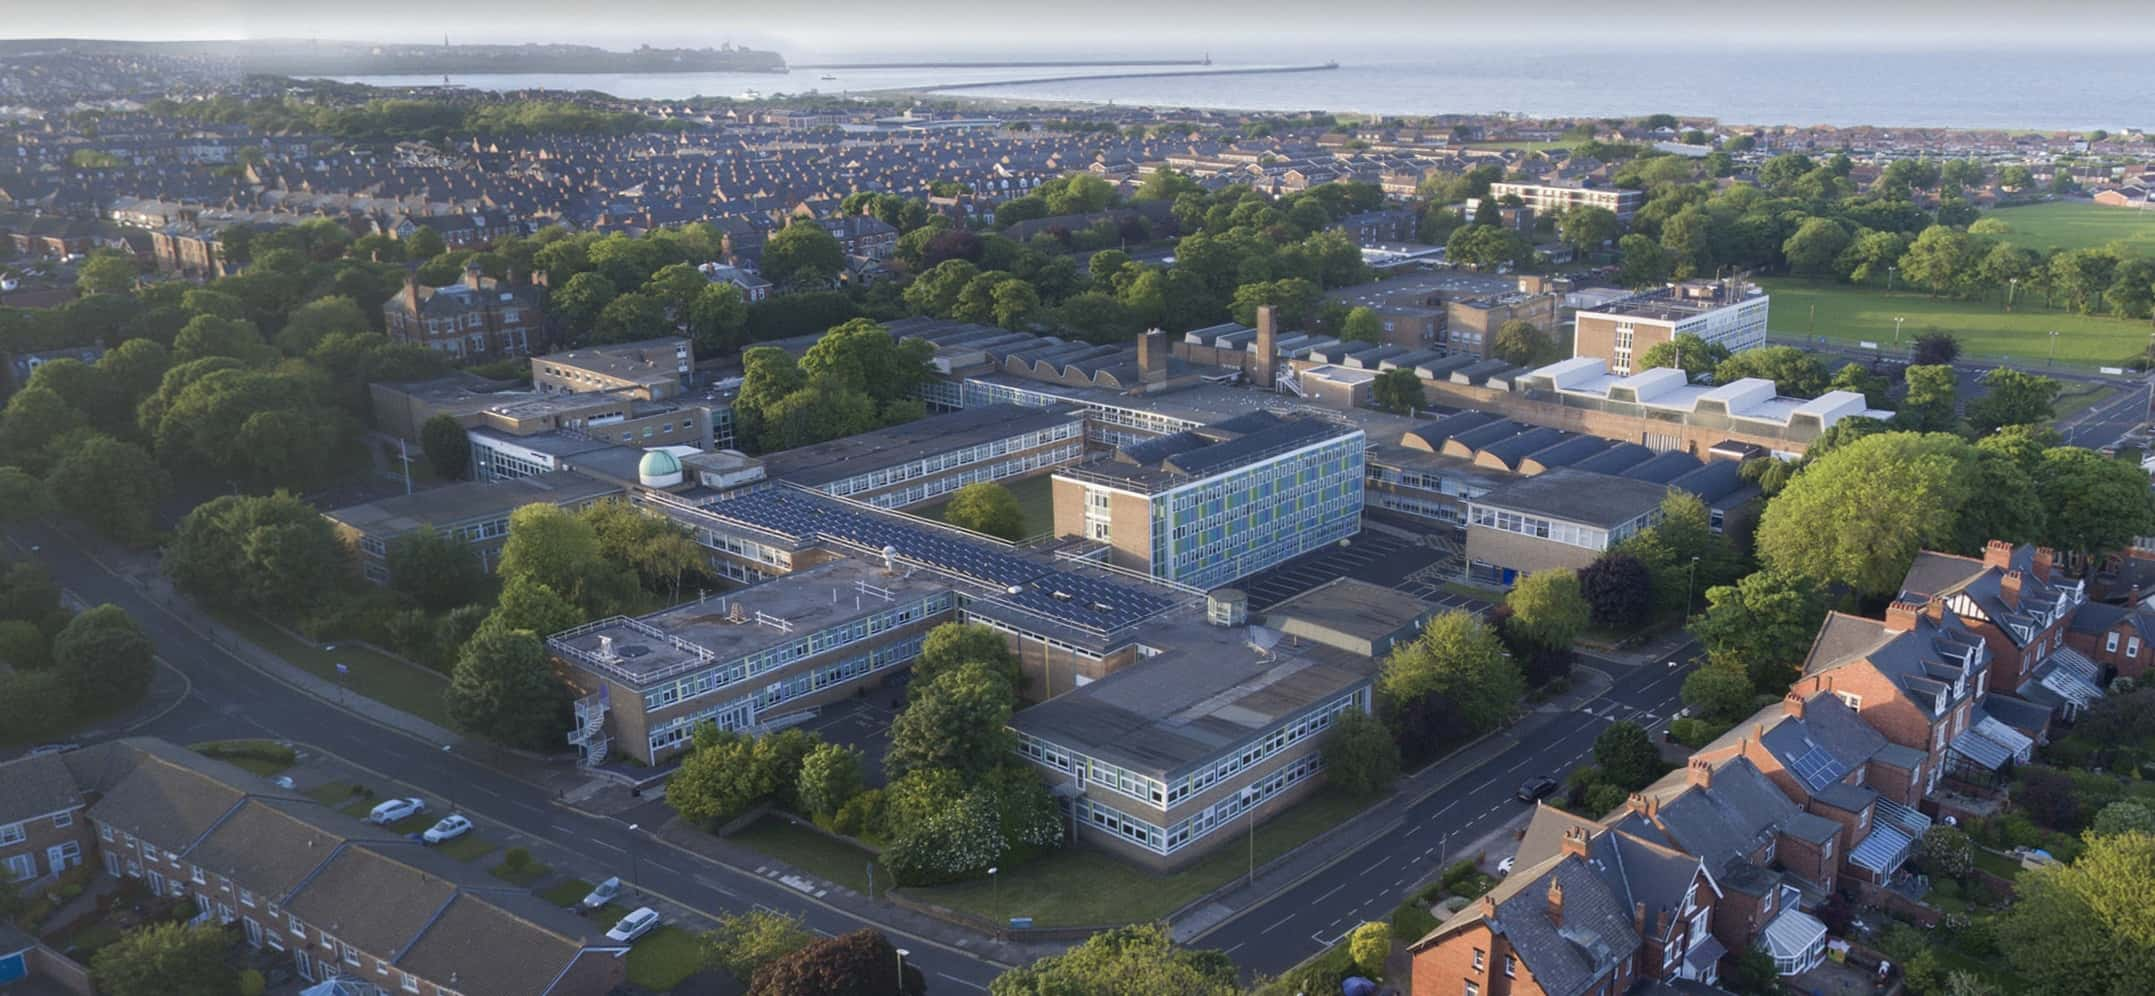 South Tyneside College St George's Avenue South Shields NE34 6ET